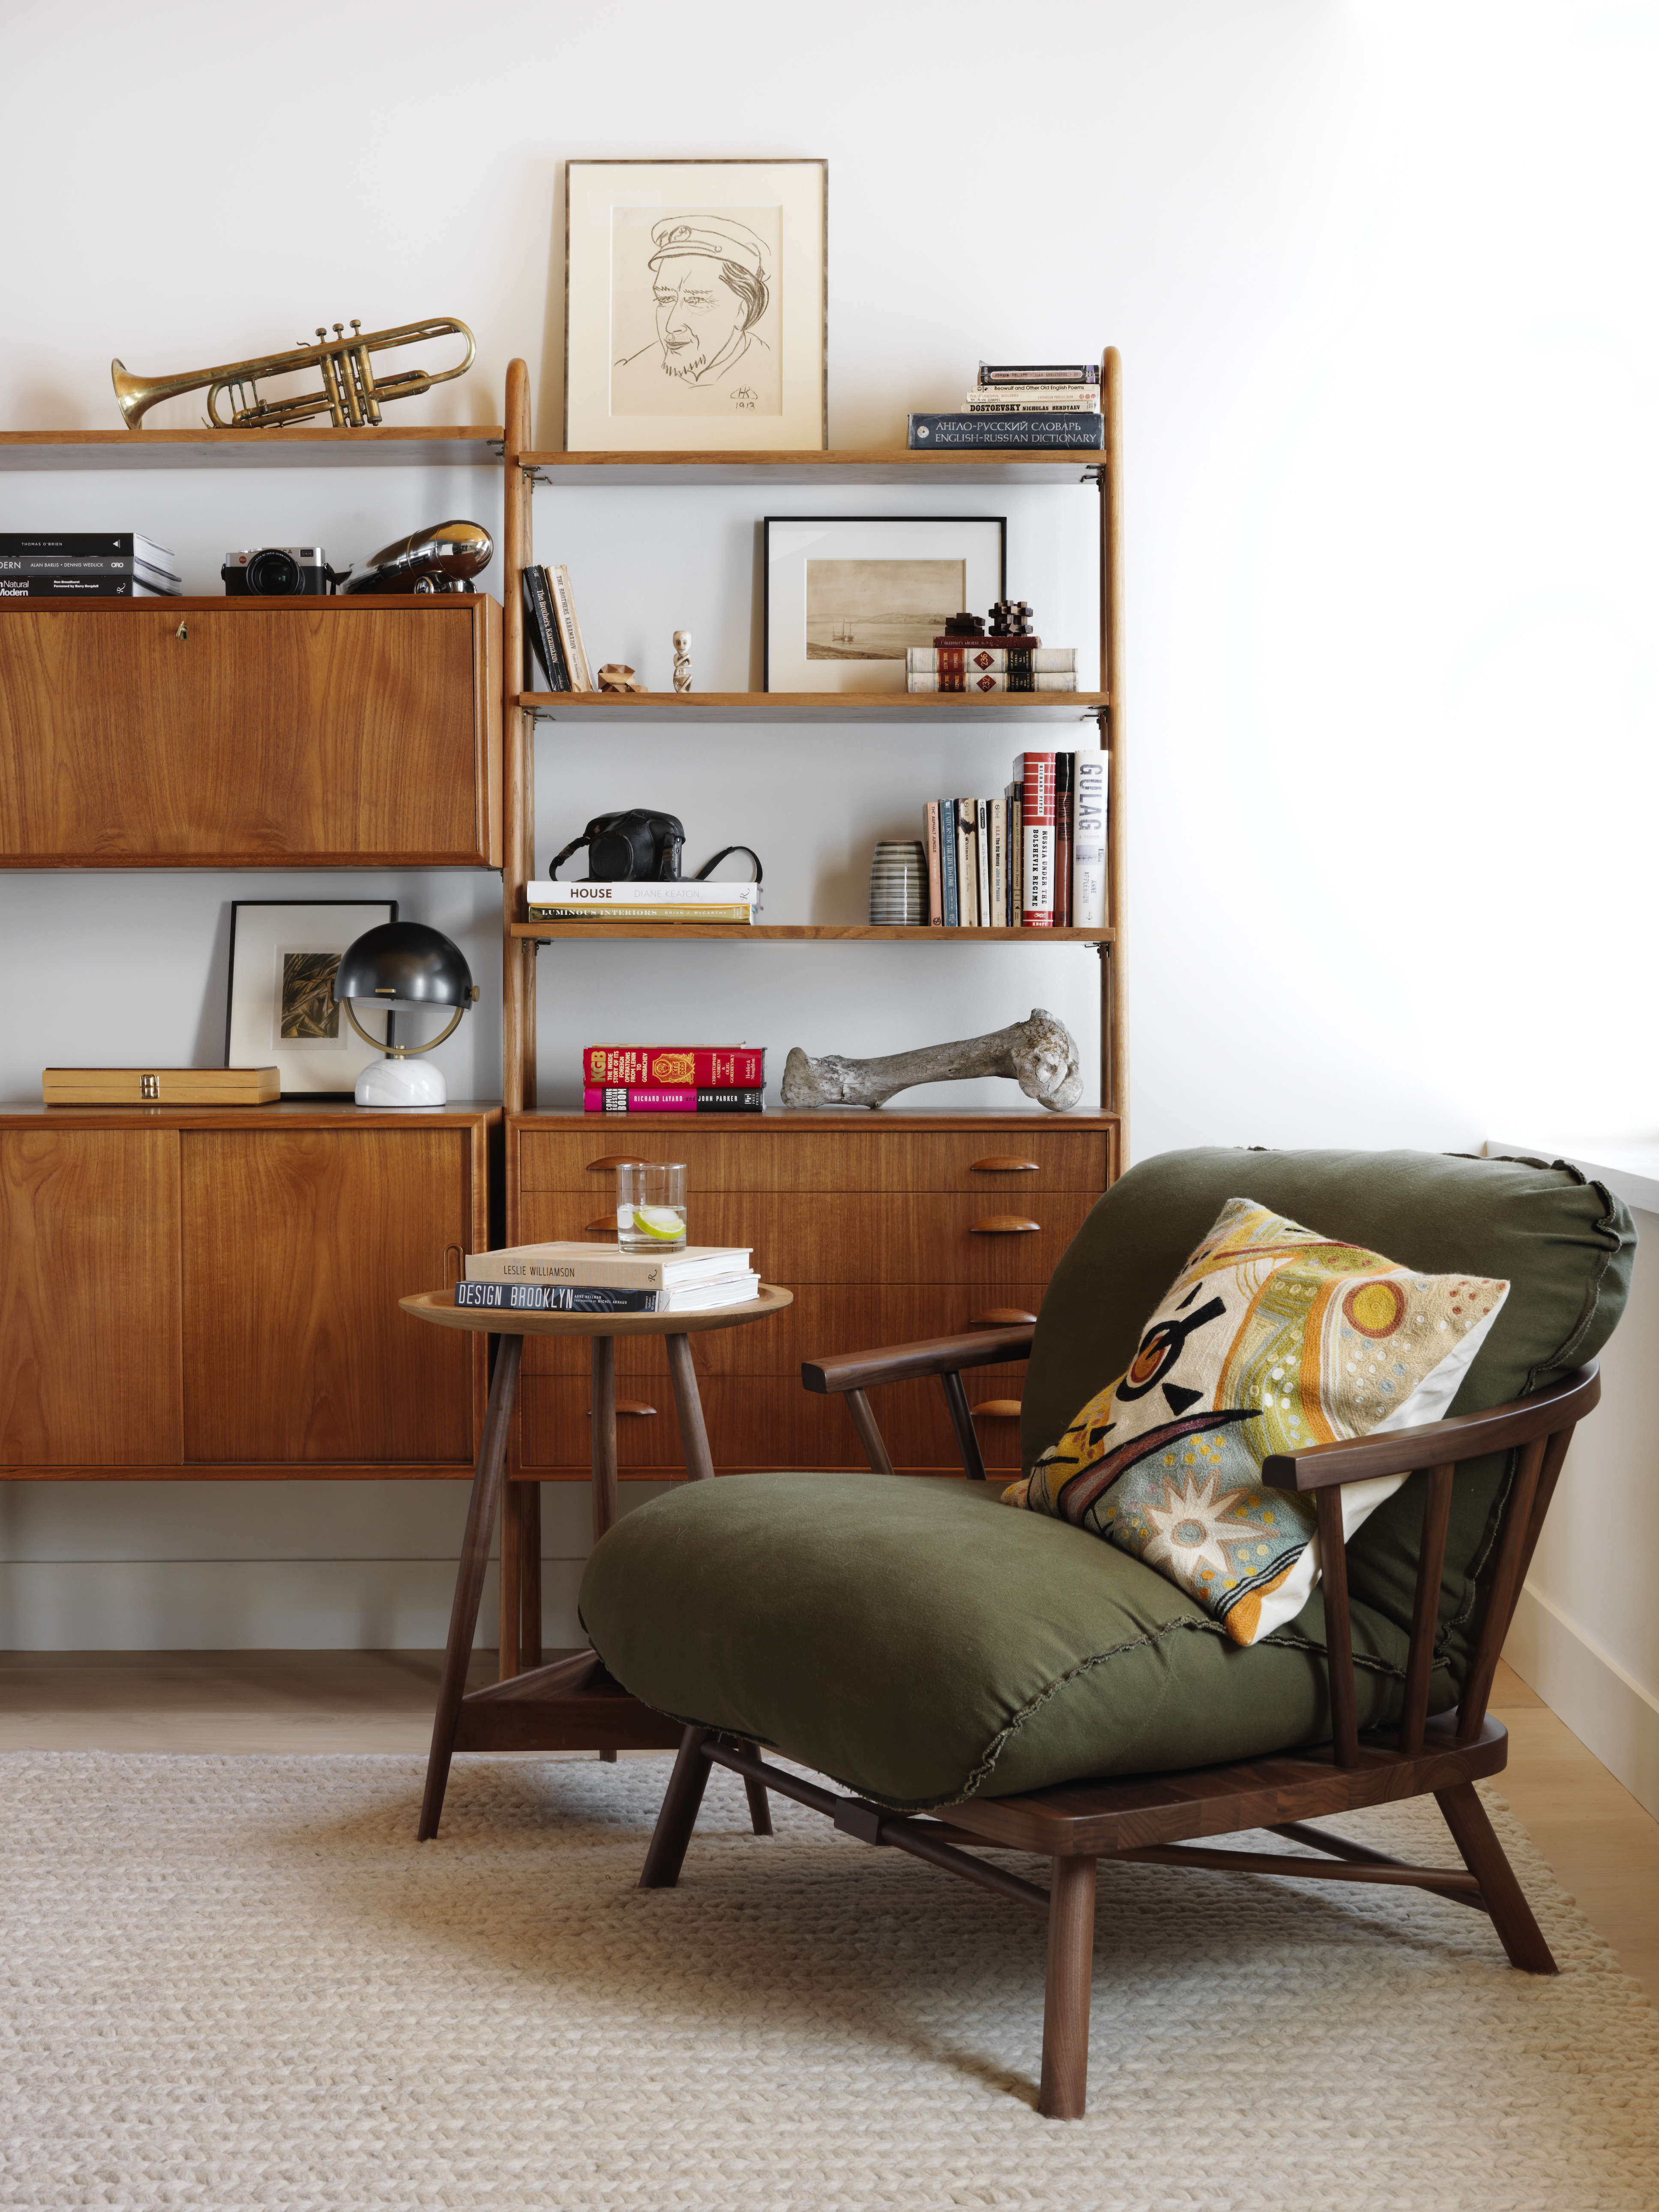 Guest room Fox Hall by BarlisWedlick | Remodelista